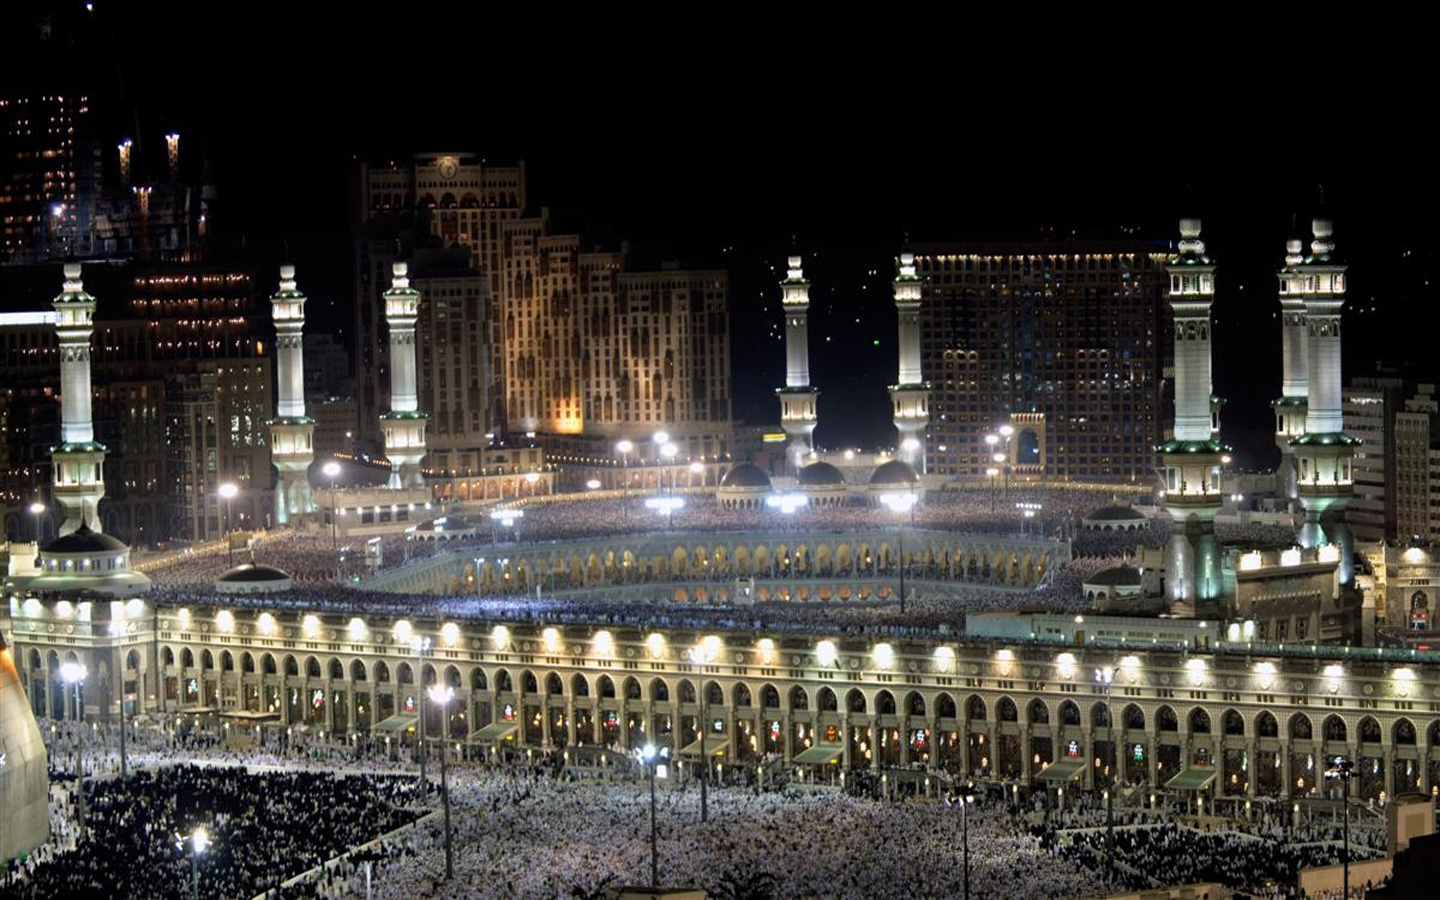 Khana Kaba Live http://quranwallpapers.blogspot.com/2012/07/khana-kaaba-at-night-pictures.html